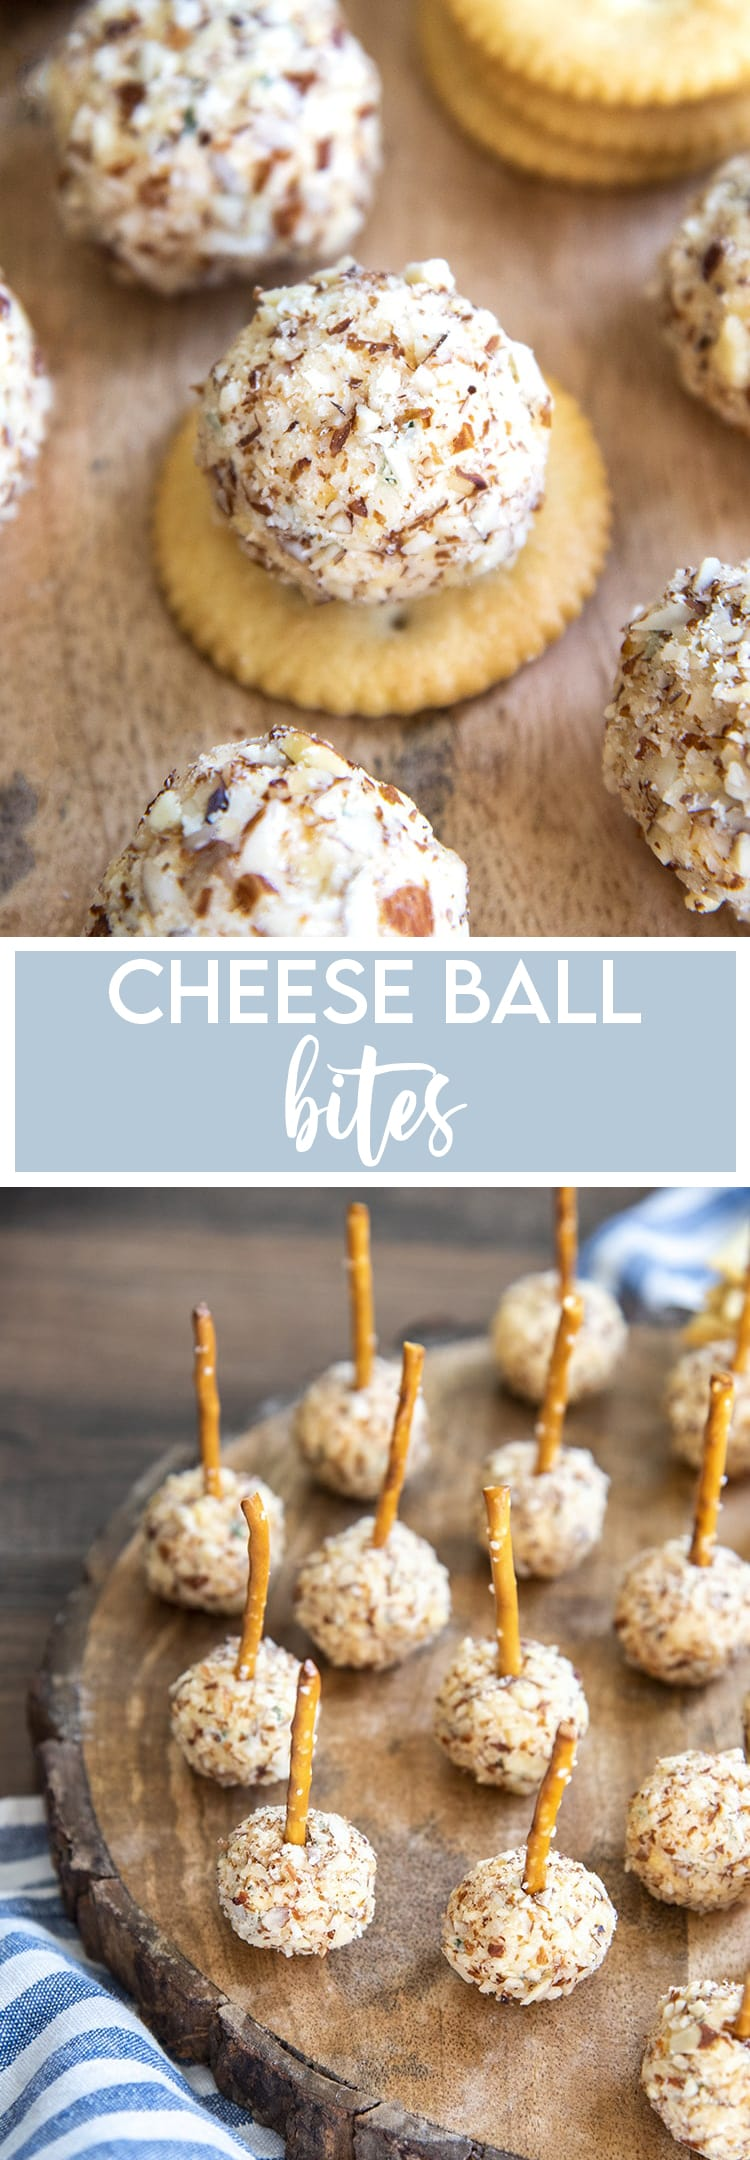 A collage of two photos of cheese ball bites, the first is a mini cheese ball bite on a round butter cracker. The second is a bunch of mini cheese ball bites with pretzels in them on a round wooden cutting board.